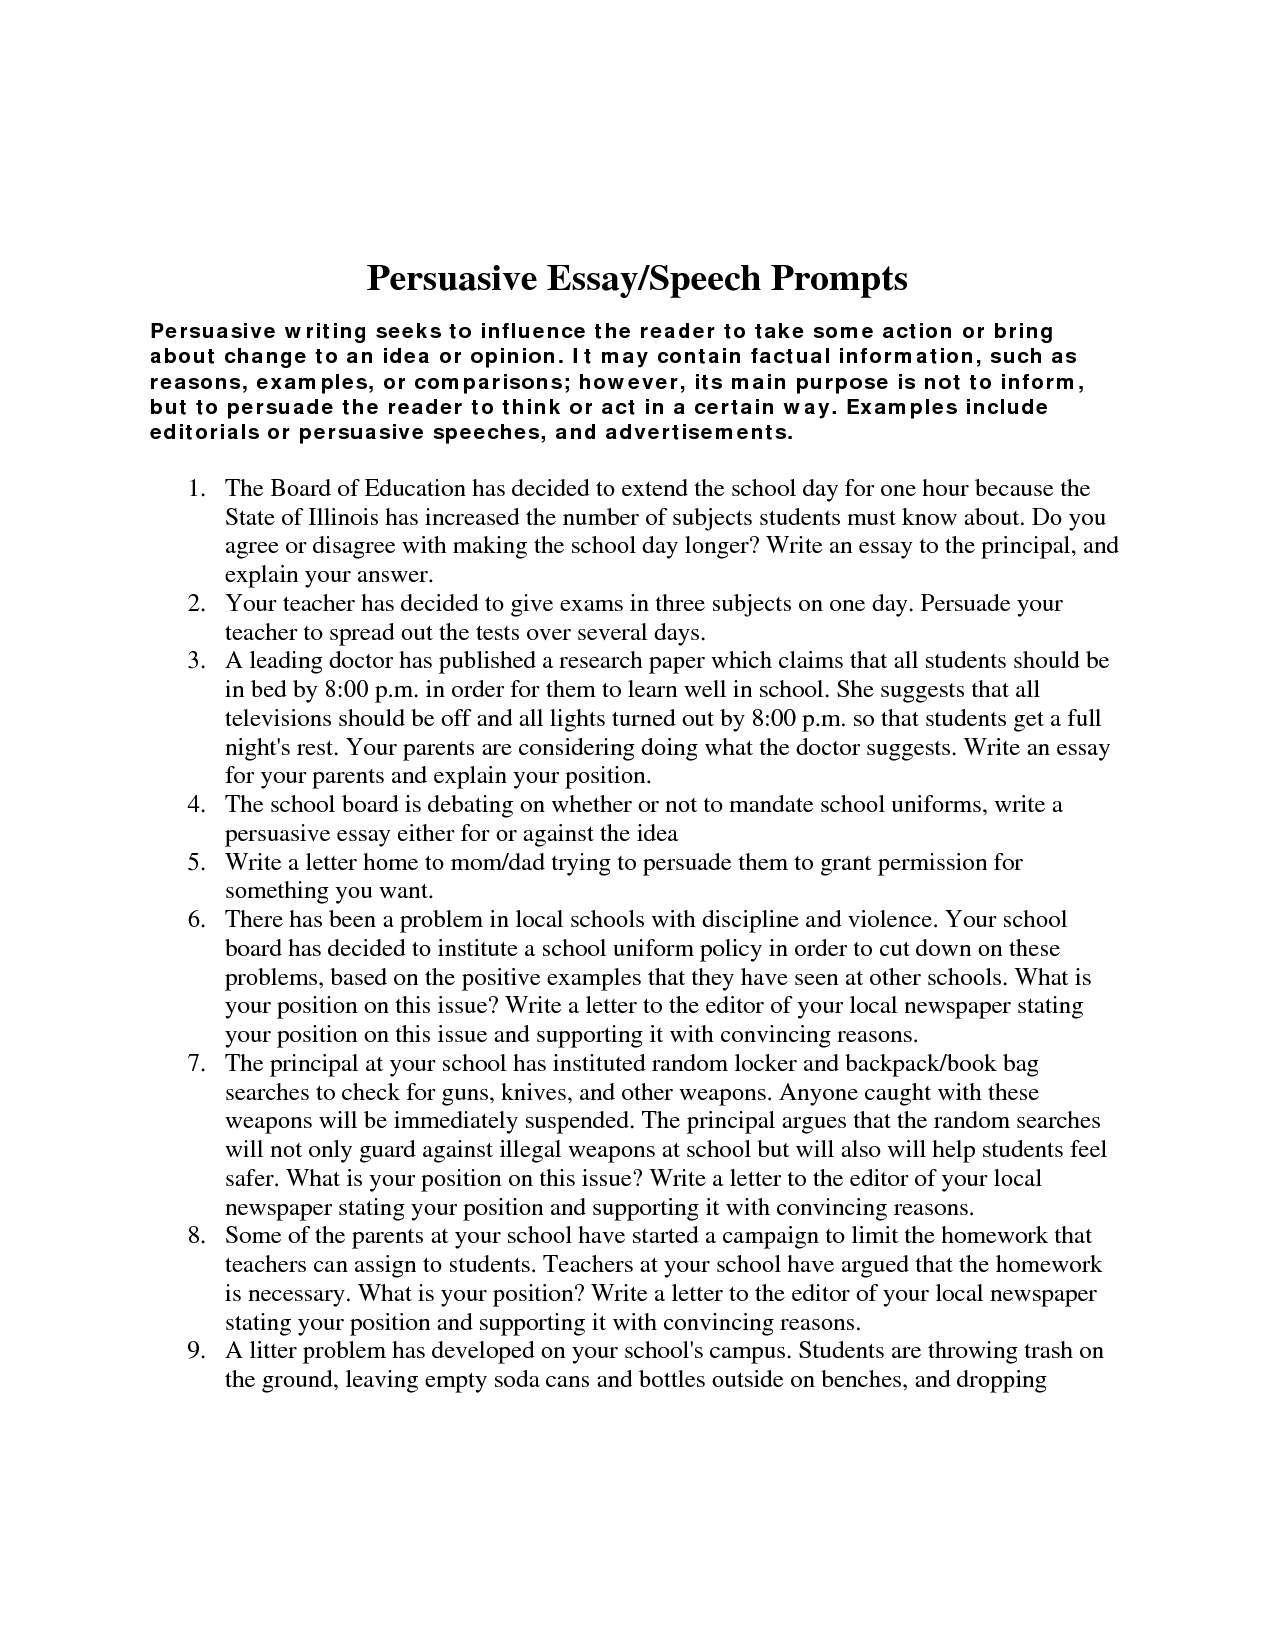 012 Essay Example Persuasive Prompts Informative Remarkable Topics Middle School Fourth Grade For Graders Full